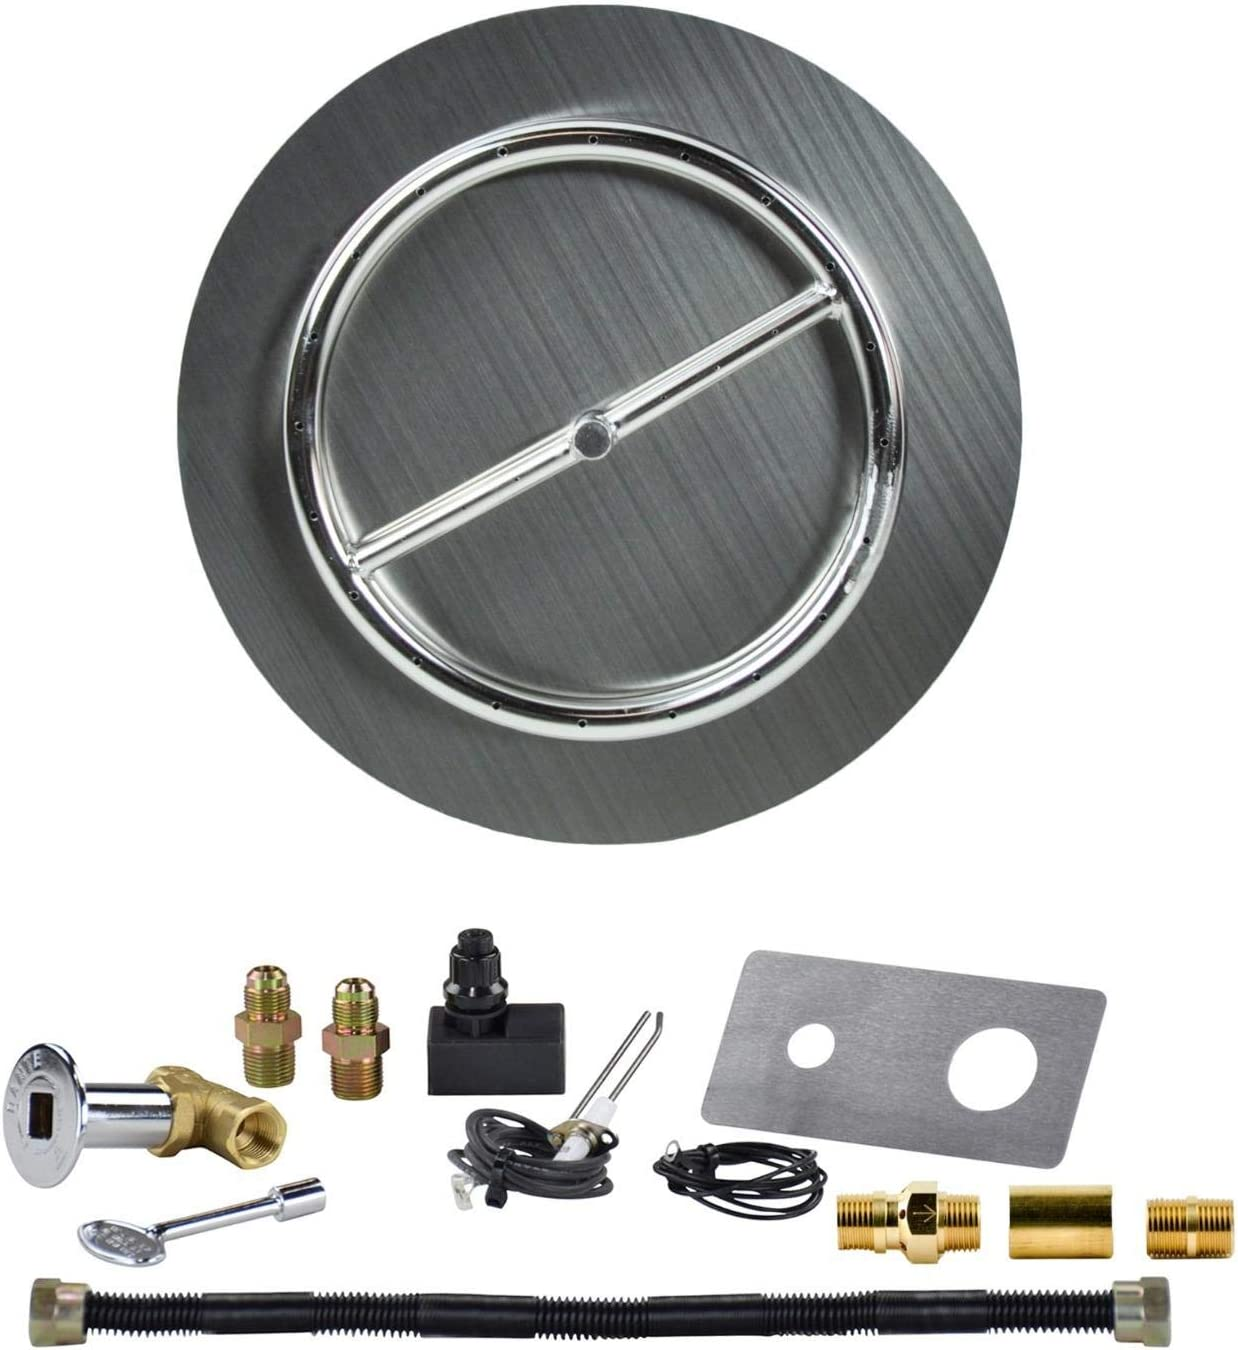 The Original 18 Stainless Steel Burner Pan with 12 Stainless Steel Ring and Complete Spark Ignition Fire Pit Kit for 20 lb Portable LP Tanks Dreffco